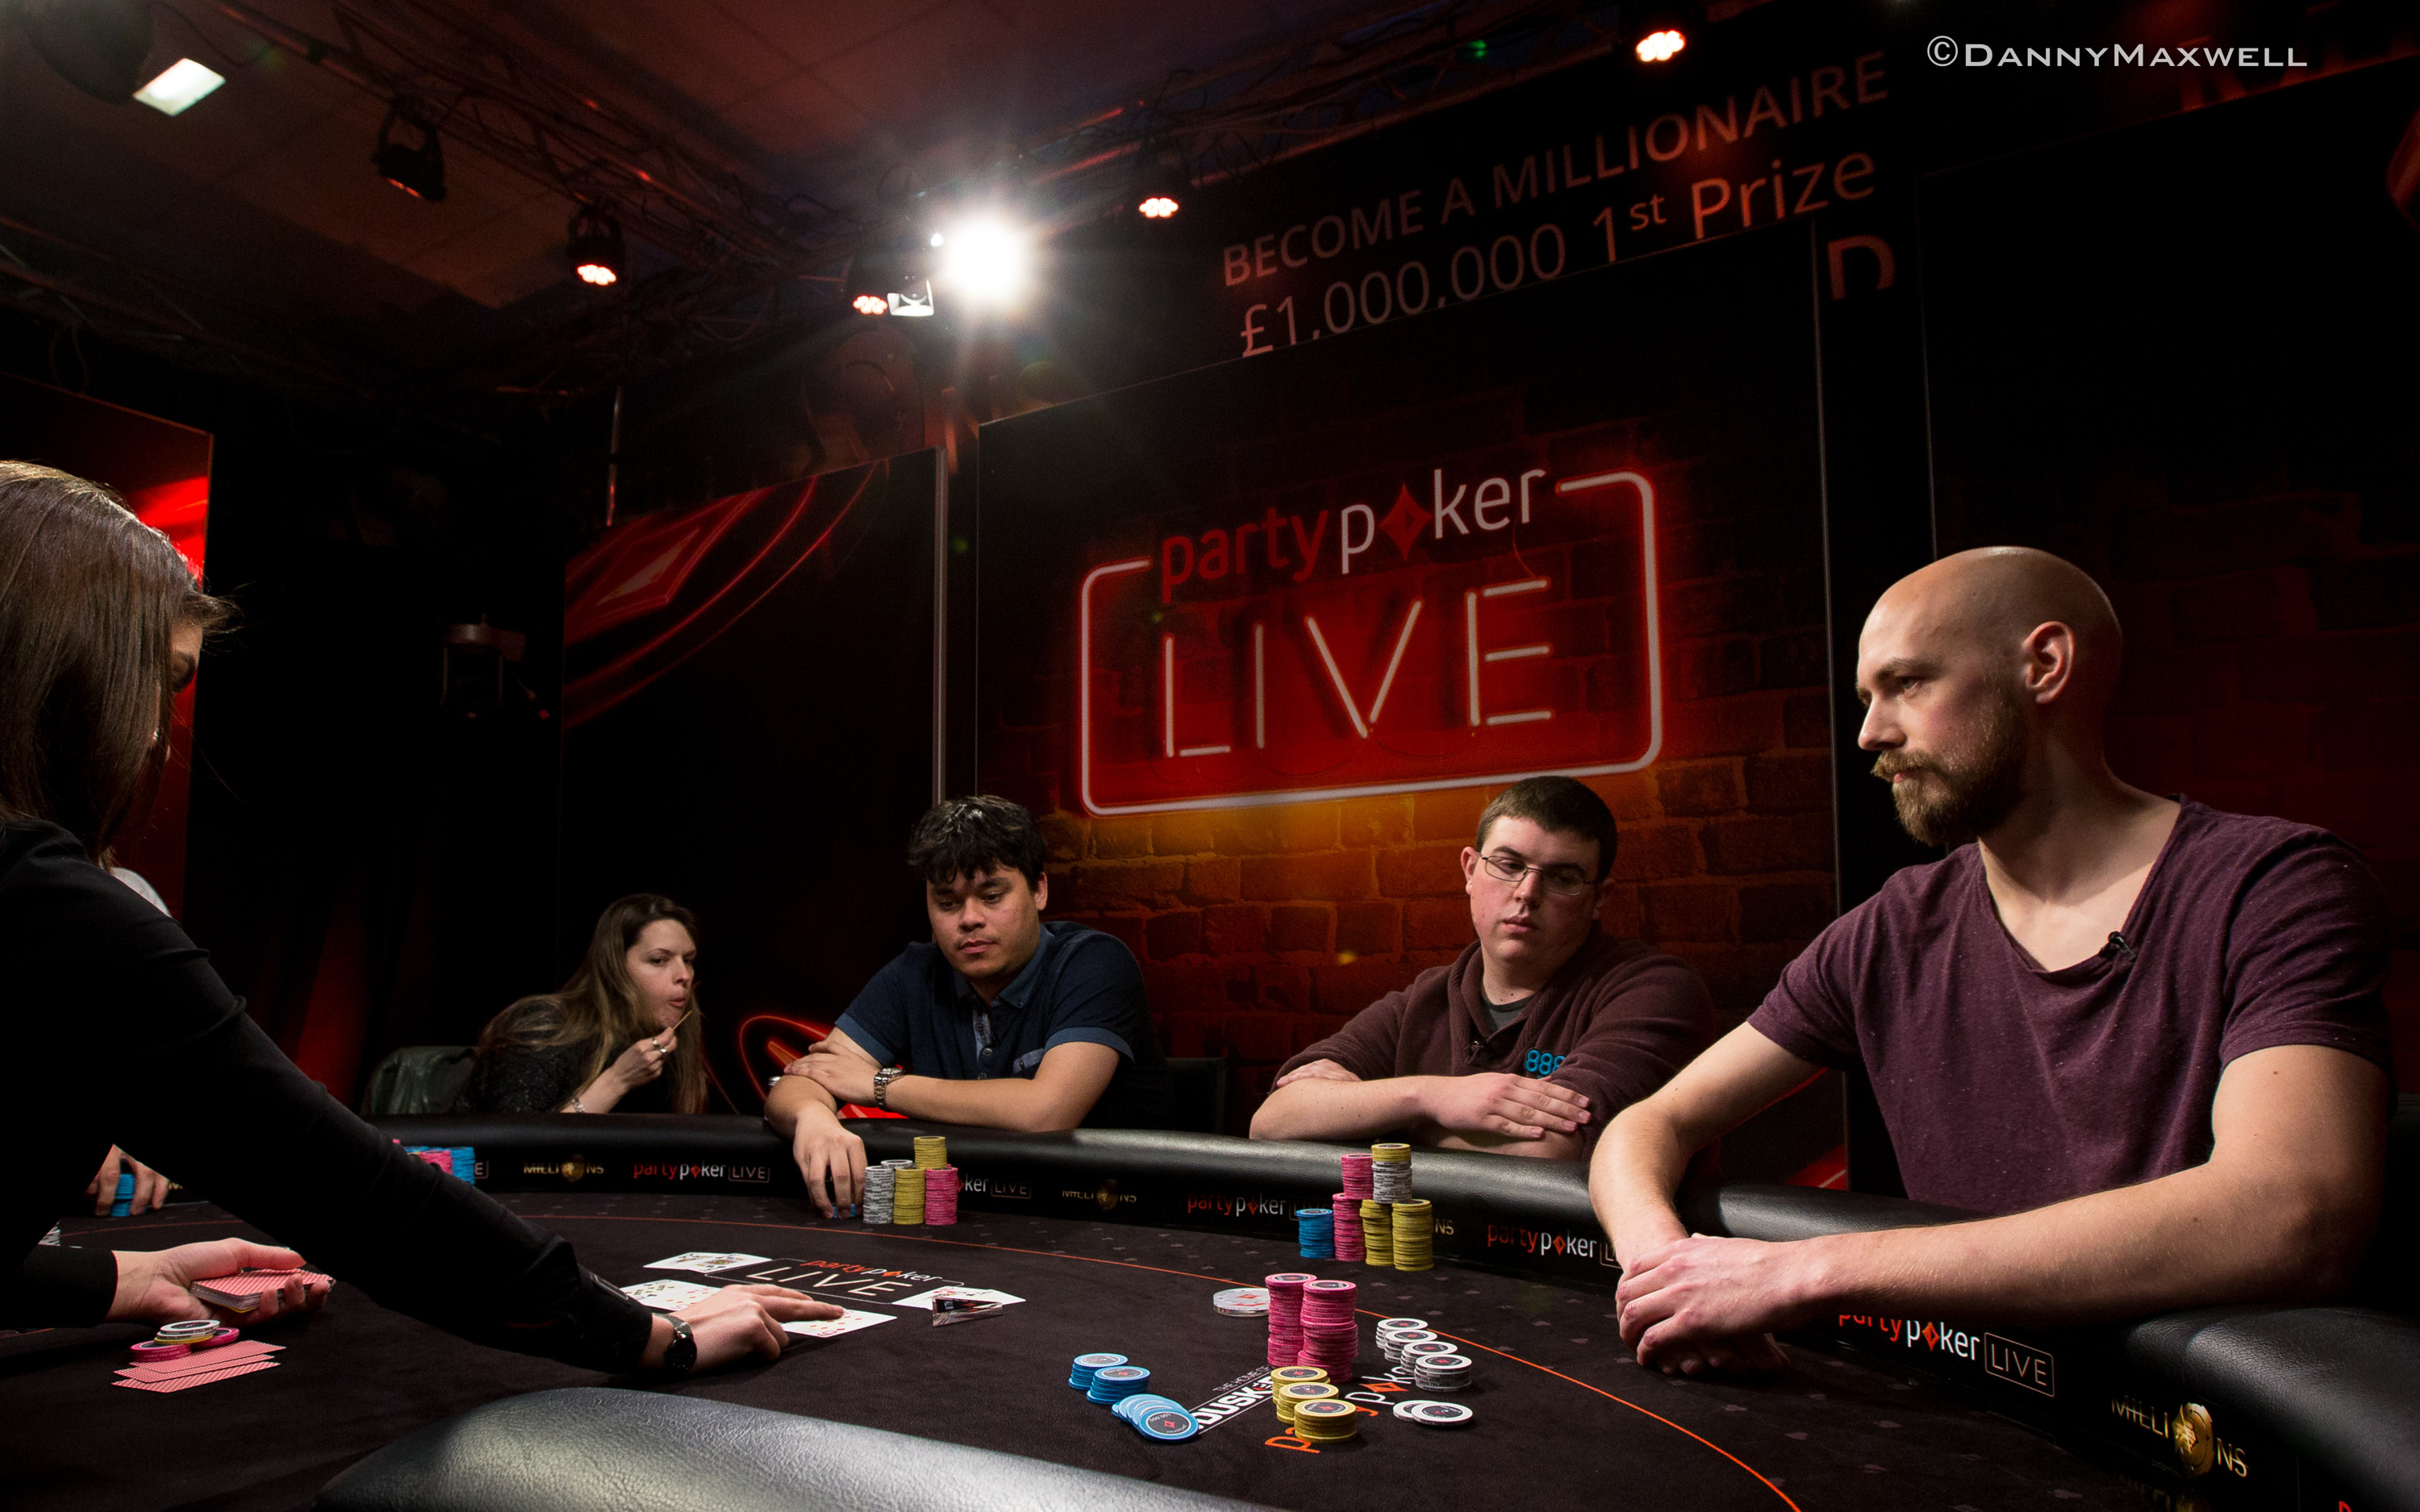 Maria Lampropulos Scoops Partypoker LIVE Millions for Historic Win, CardsChat Forum Member Jeremy Pantin Takes Third